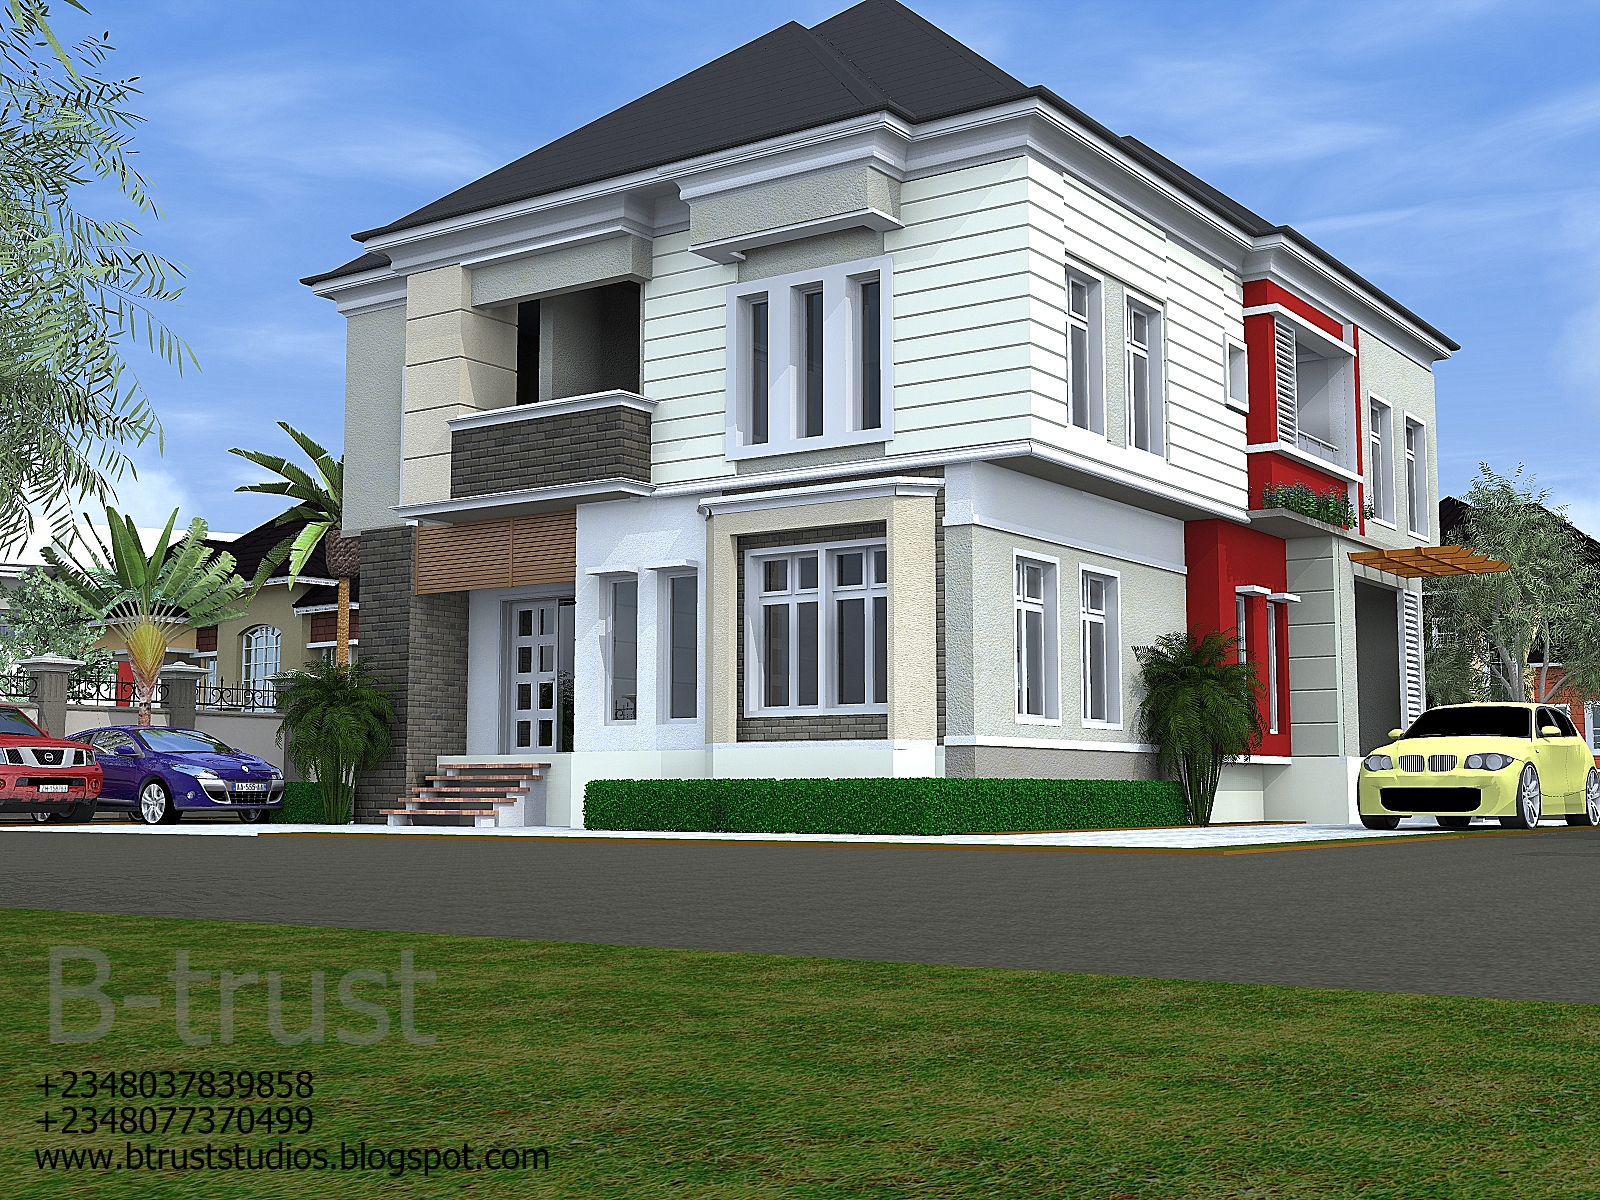 architectural designs by b trust studios 5 bedroom duplex